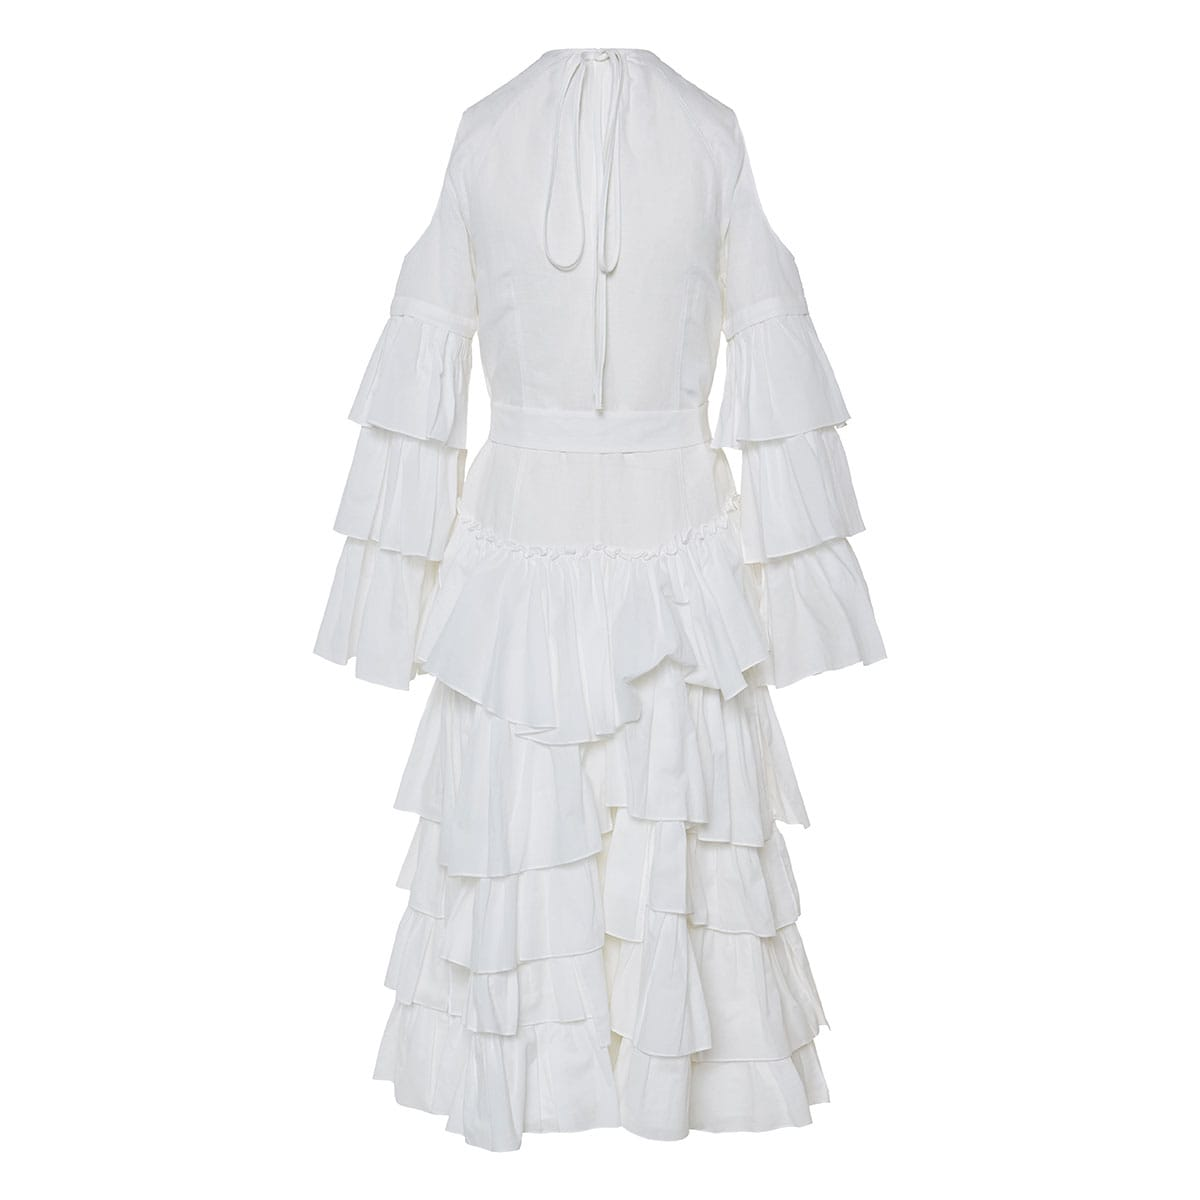 Long ruffled linen dress